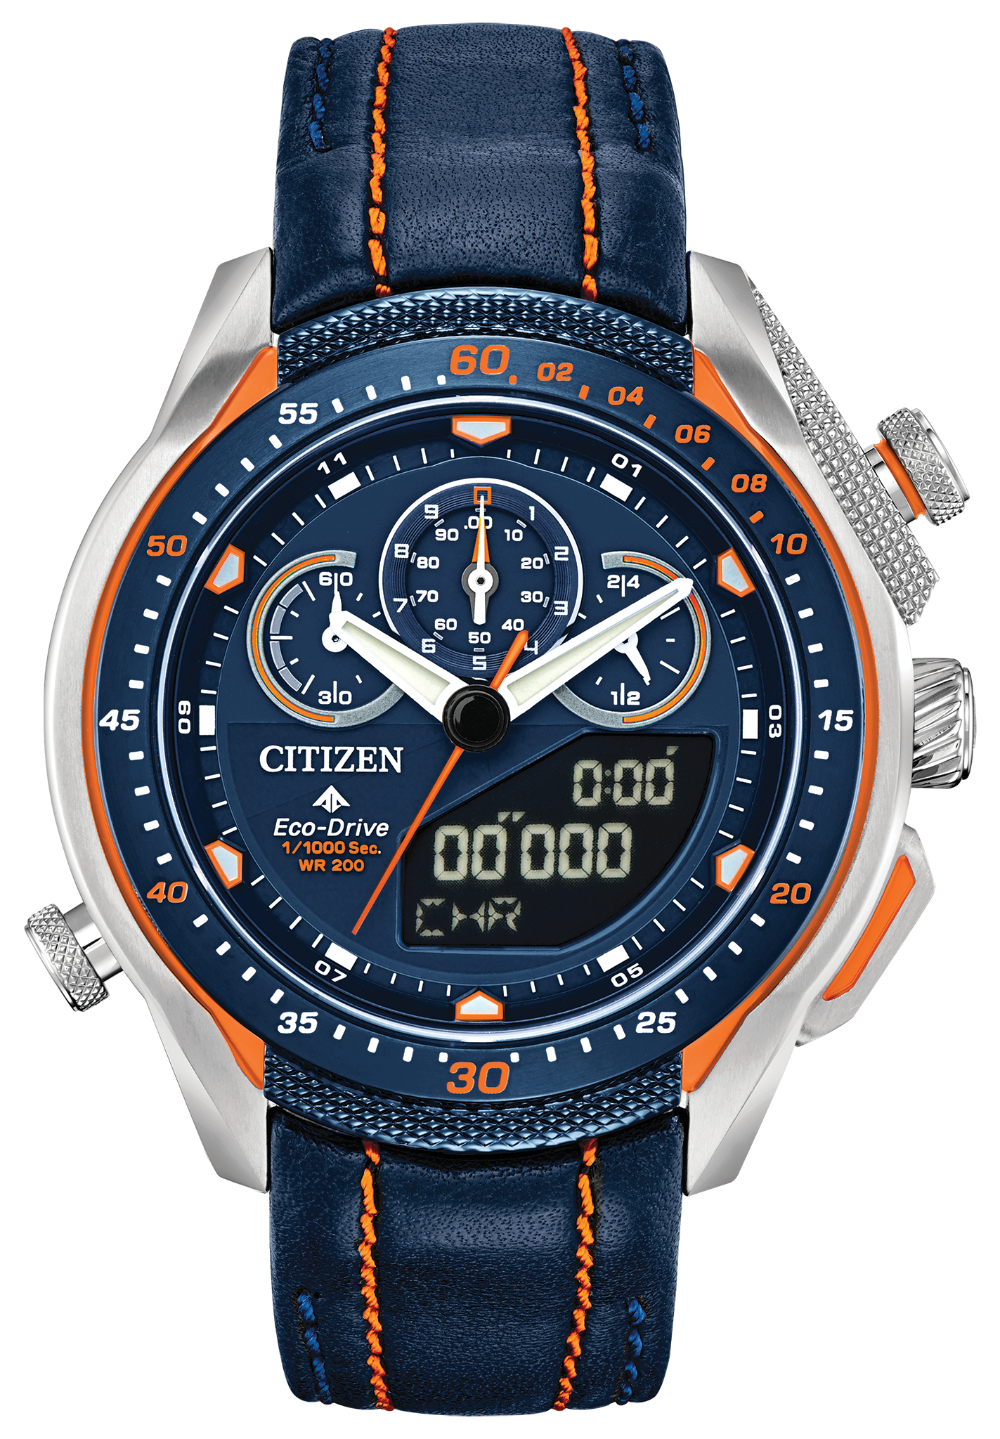 Citizen JW0139-05L Promaster SST Leather Strap Analog Digital Watch